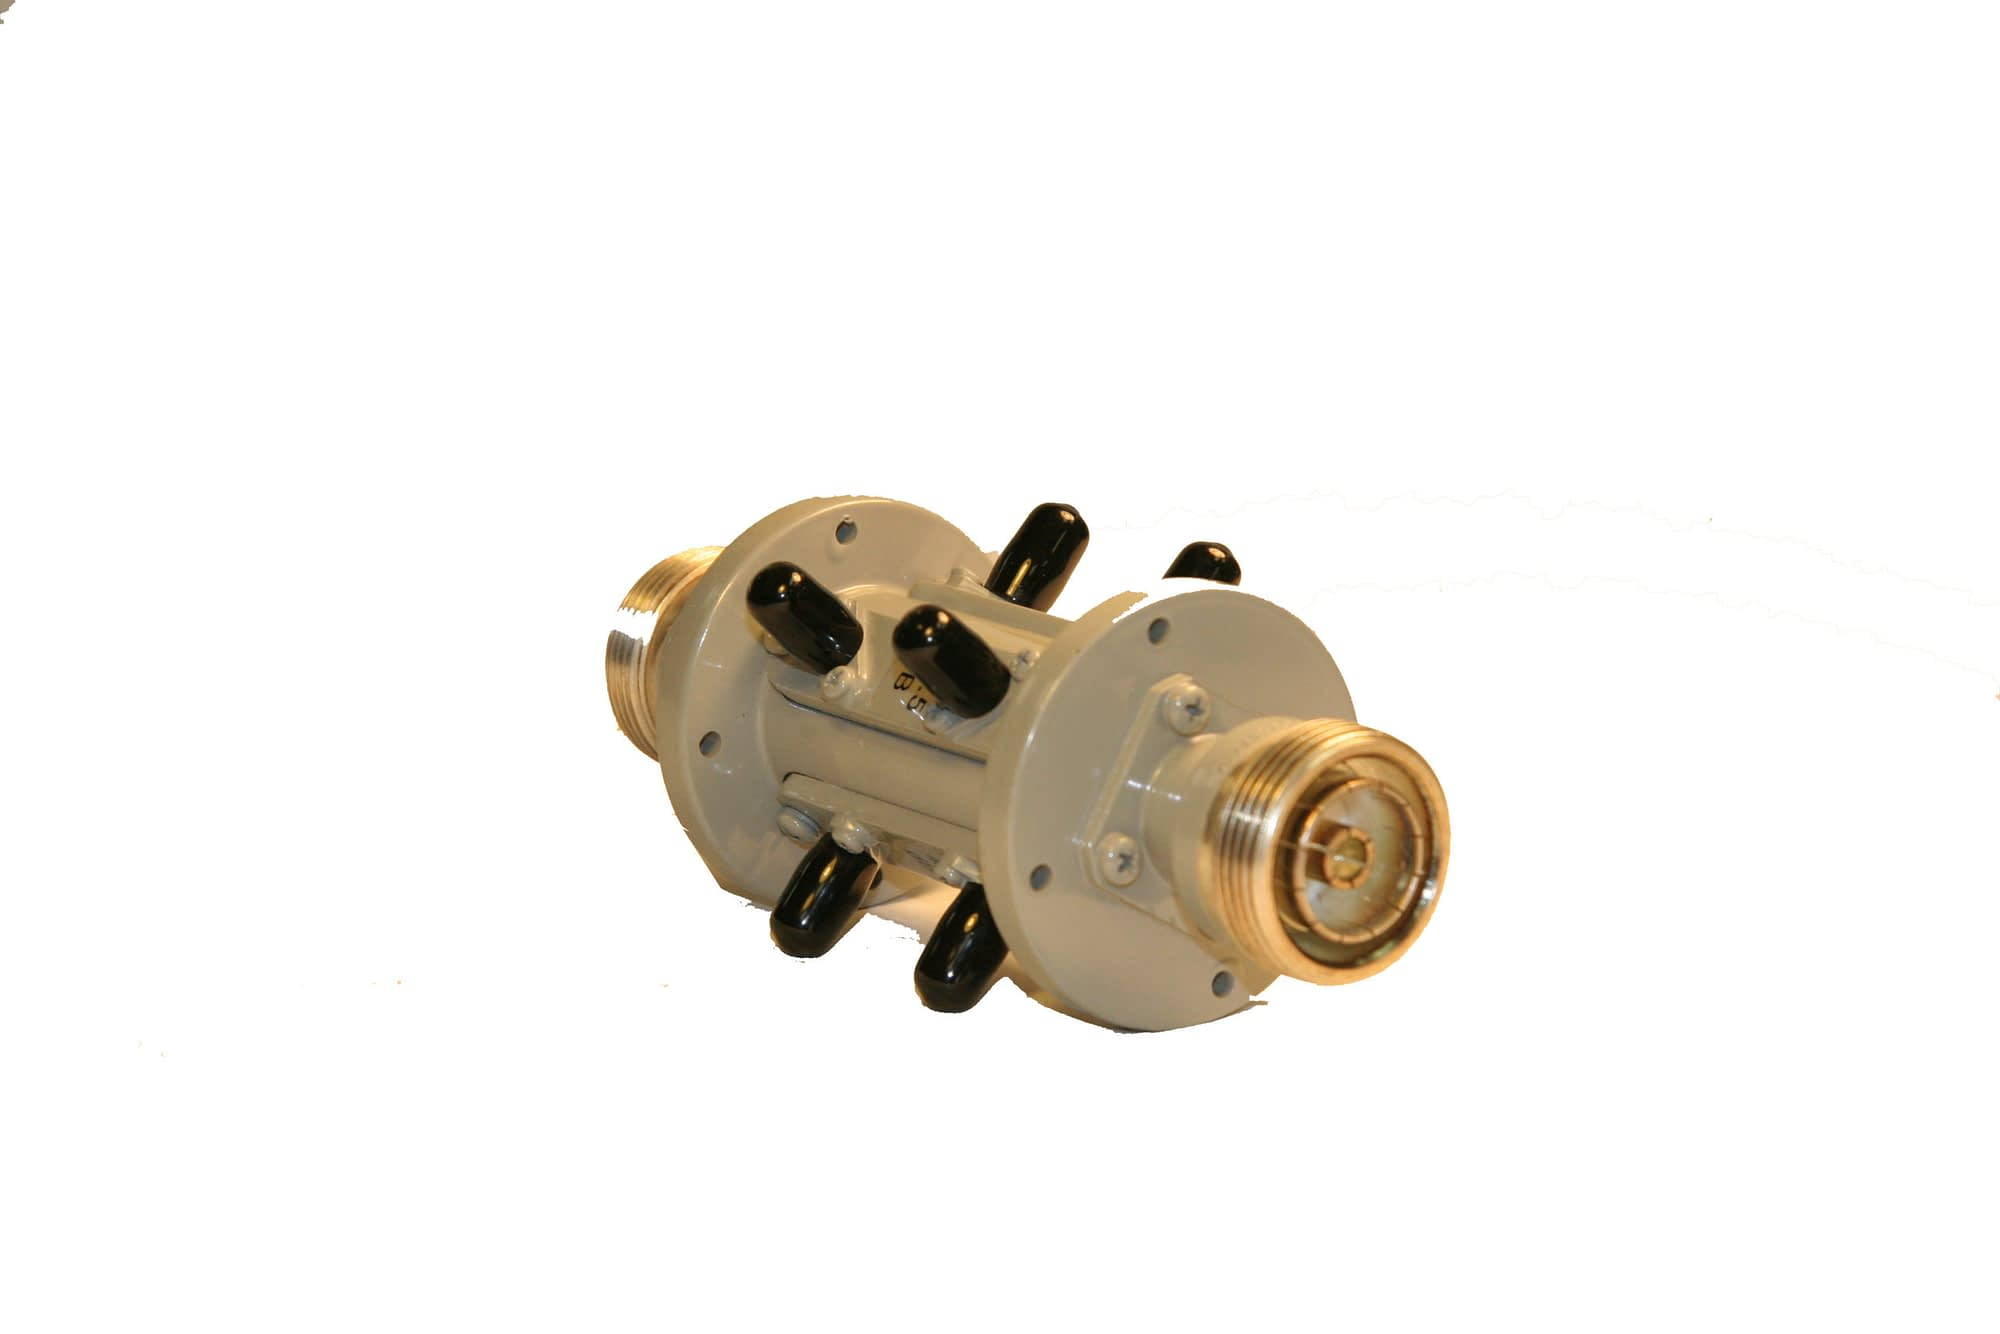 TRIPLE ARM COAXIAL COUPLER